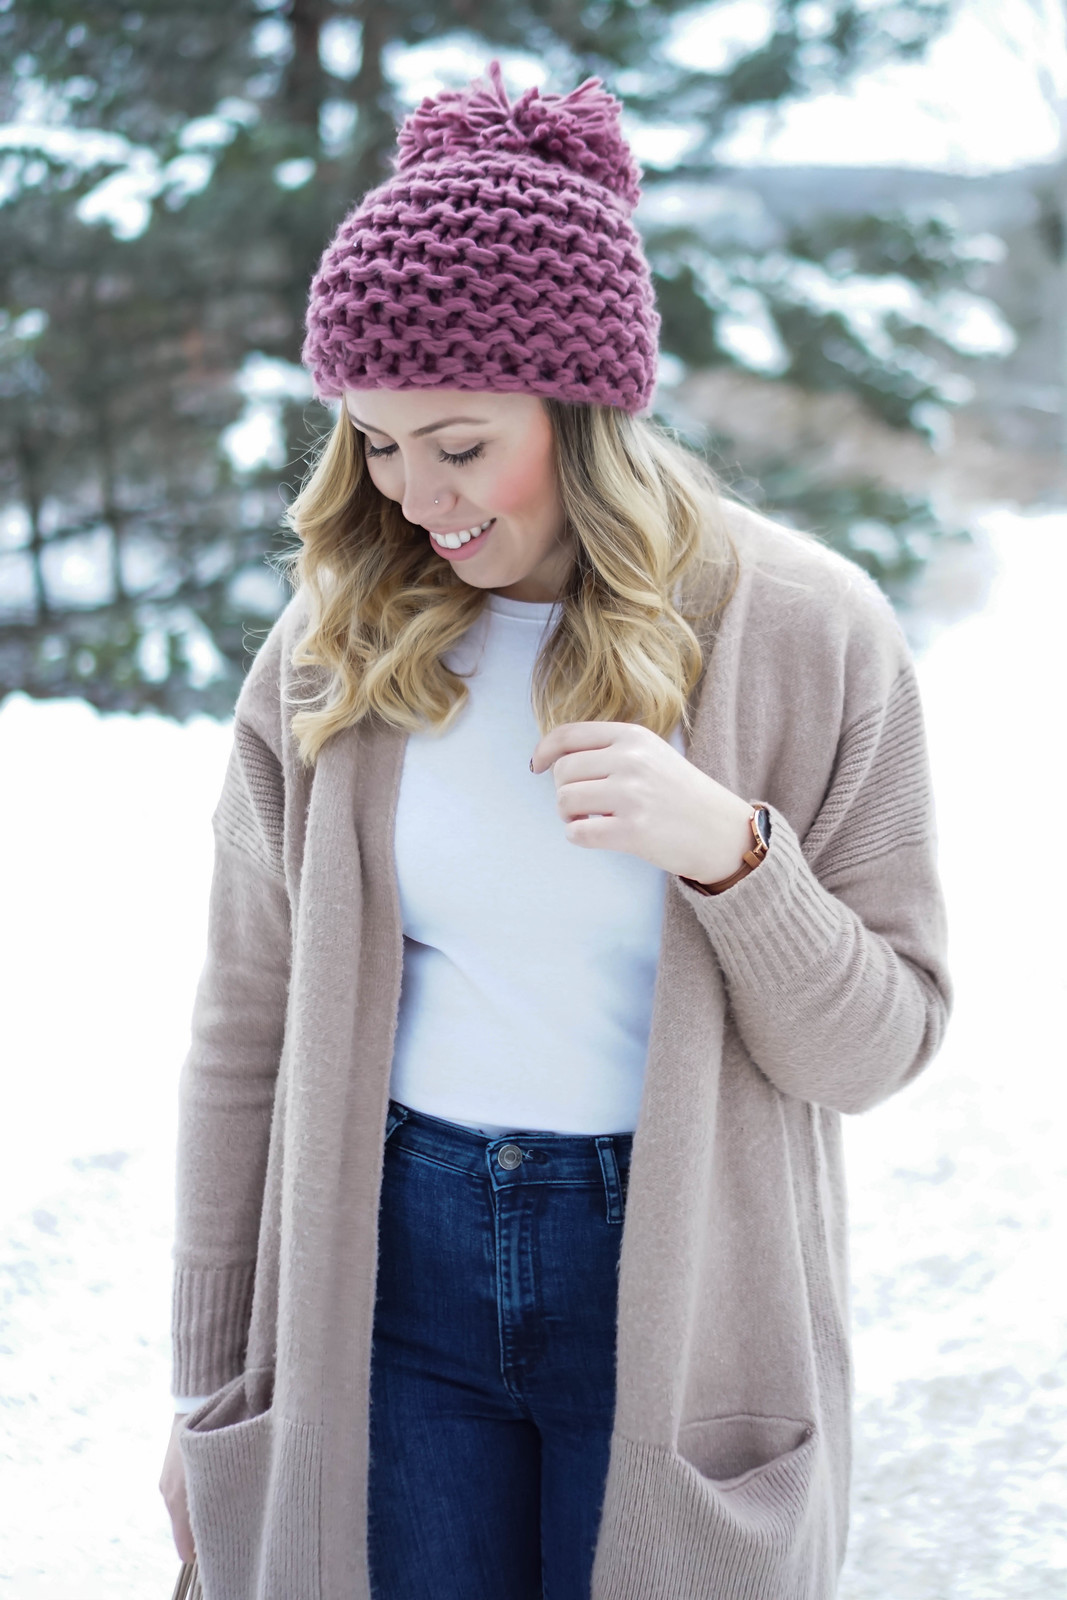 Casual Winter Pastel Outfit in Snow | Pink Pom Pom Beanie and Camel Oversized Sweater